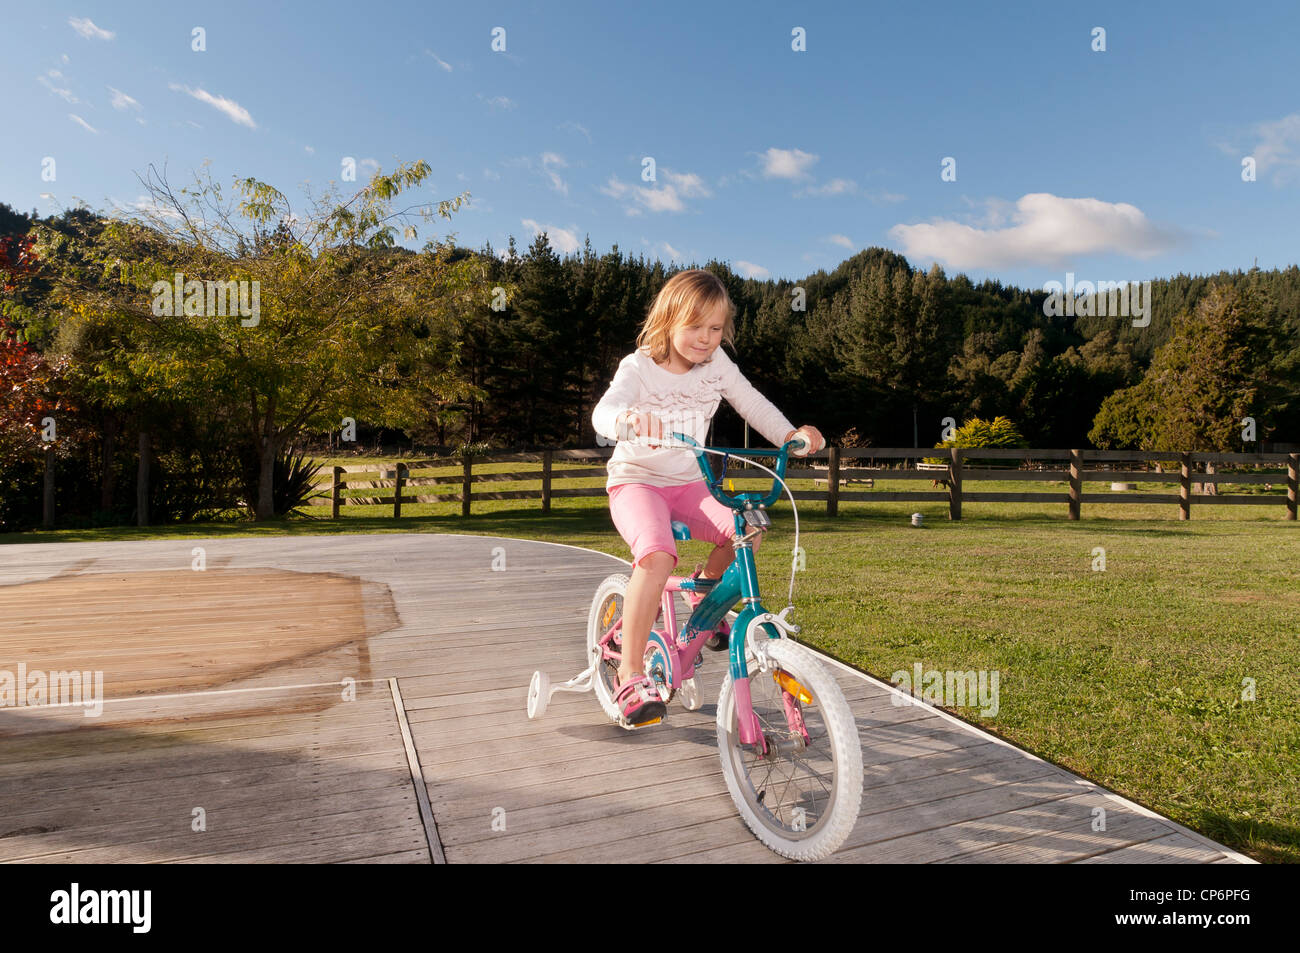 Girl riding here bike on wooden decking, New Zealand - Stock Image